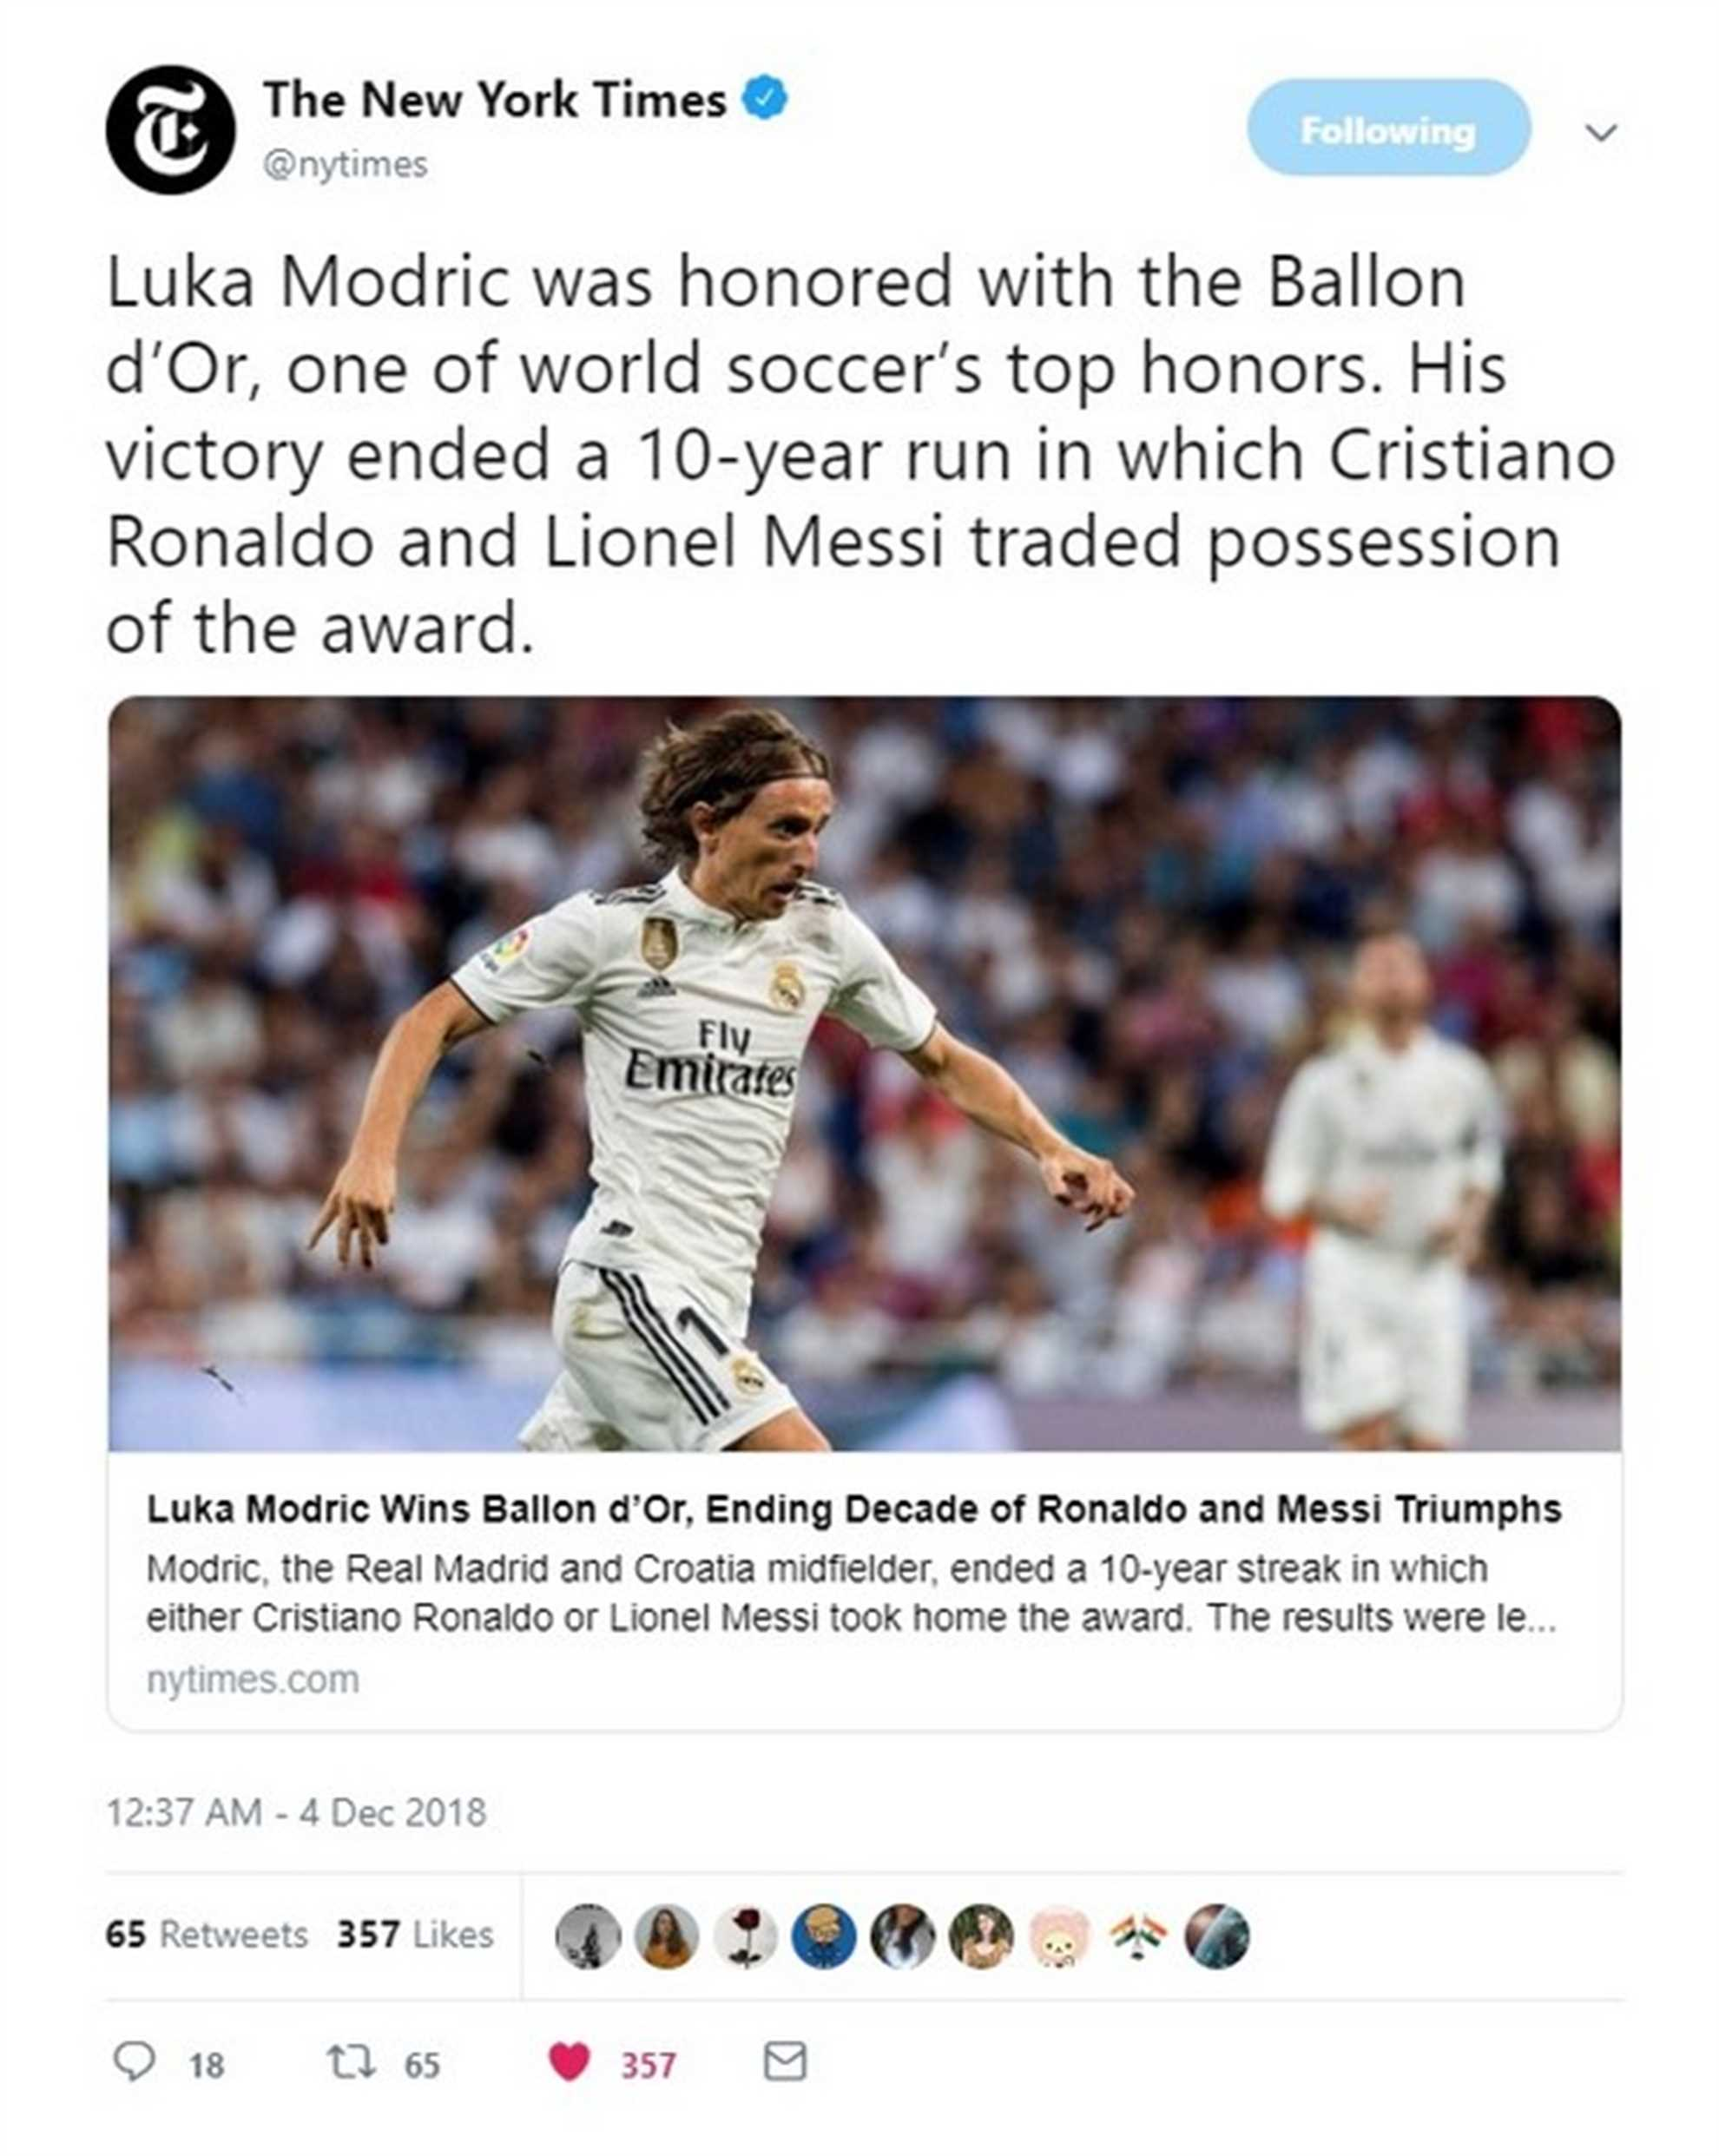 The New York Times reporst Luka Modric got Golden Ball award